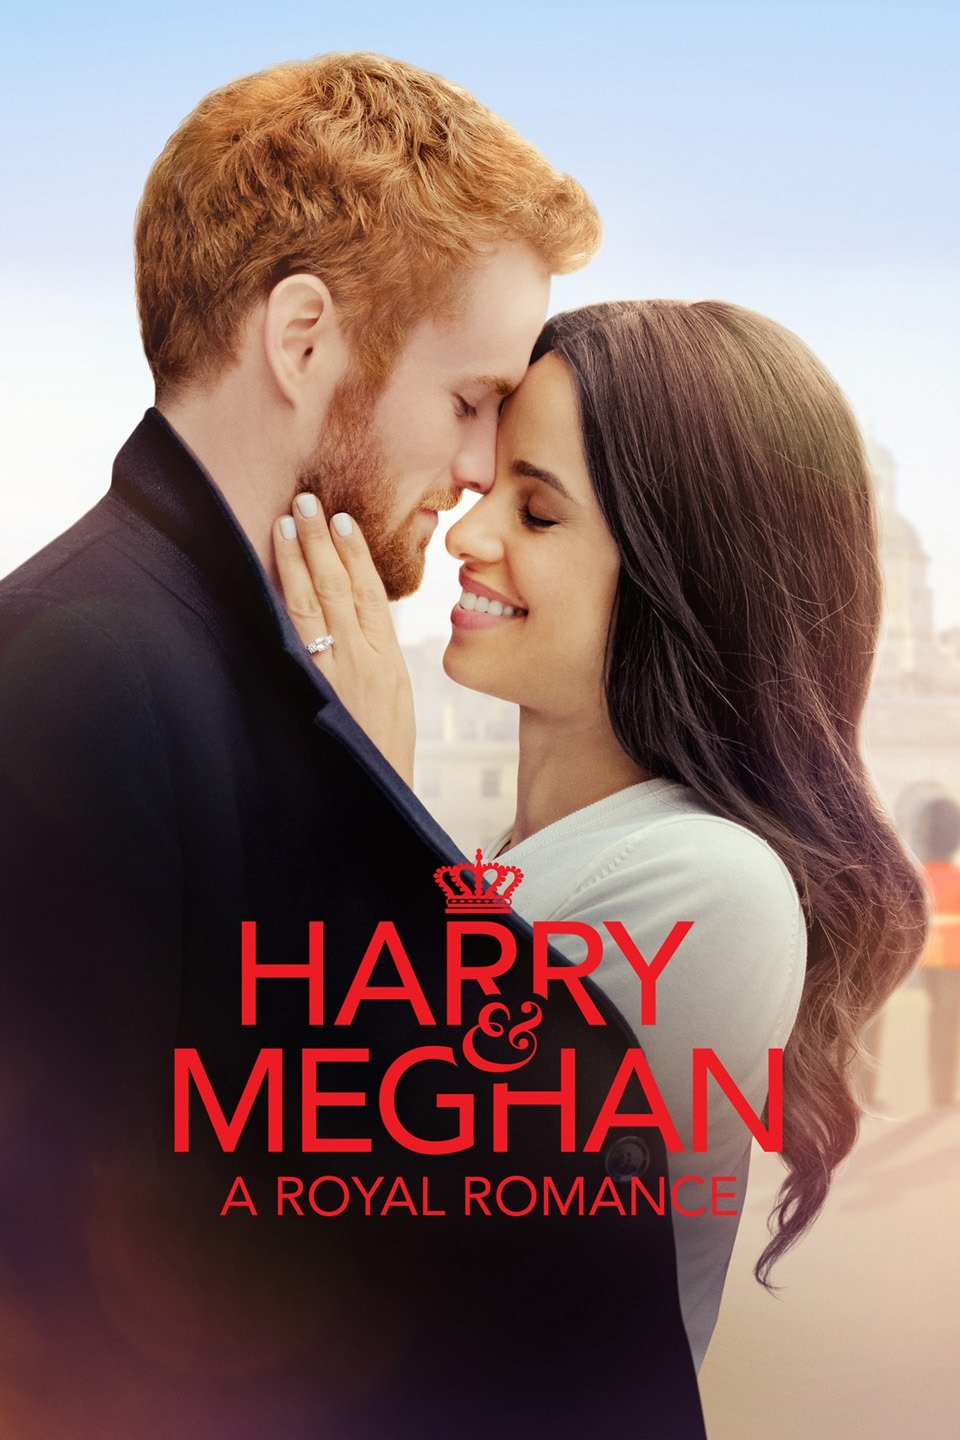 A Royal Christmas Cast.Harry Meghan A Royal Romance Tv Movie 2018 Imdb